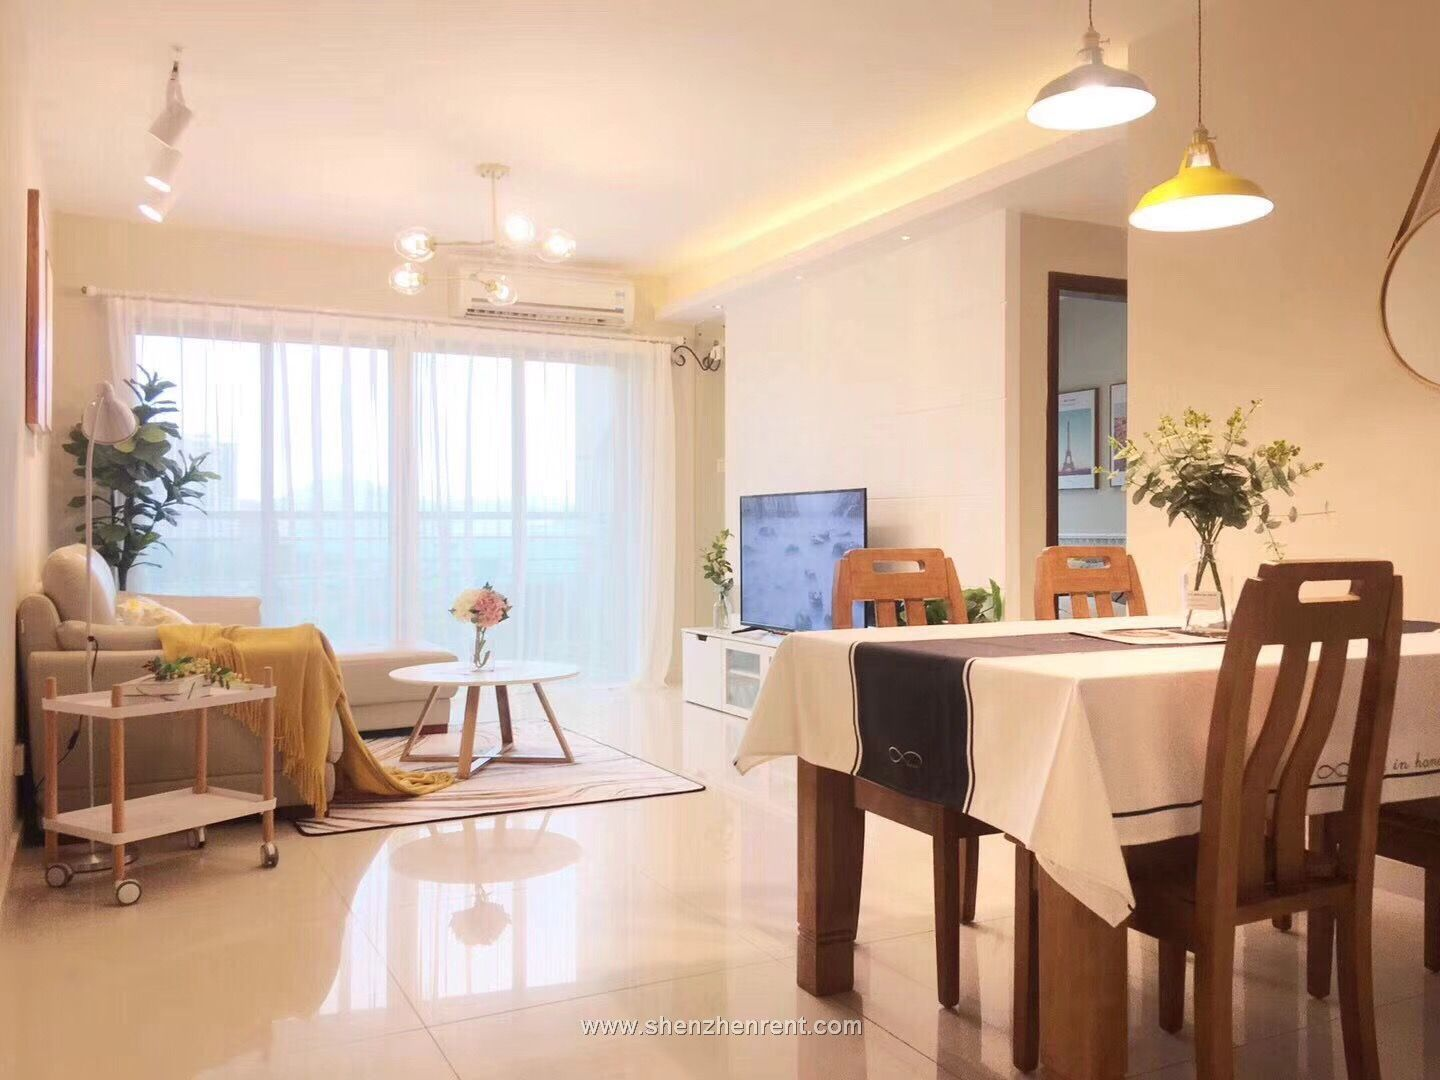 Newly renovated 3 bedrooms apartment in shekou for rent